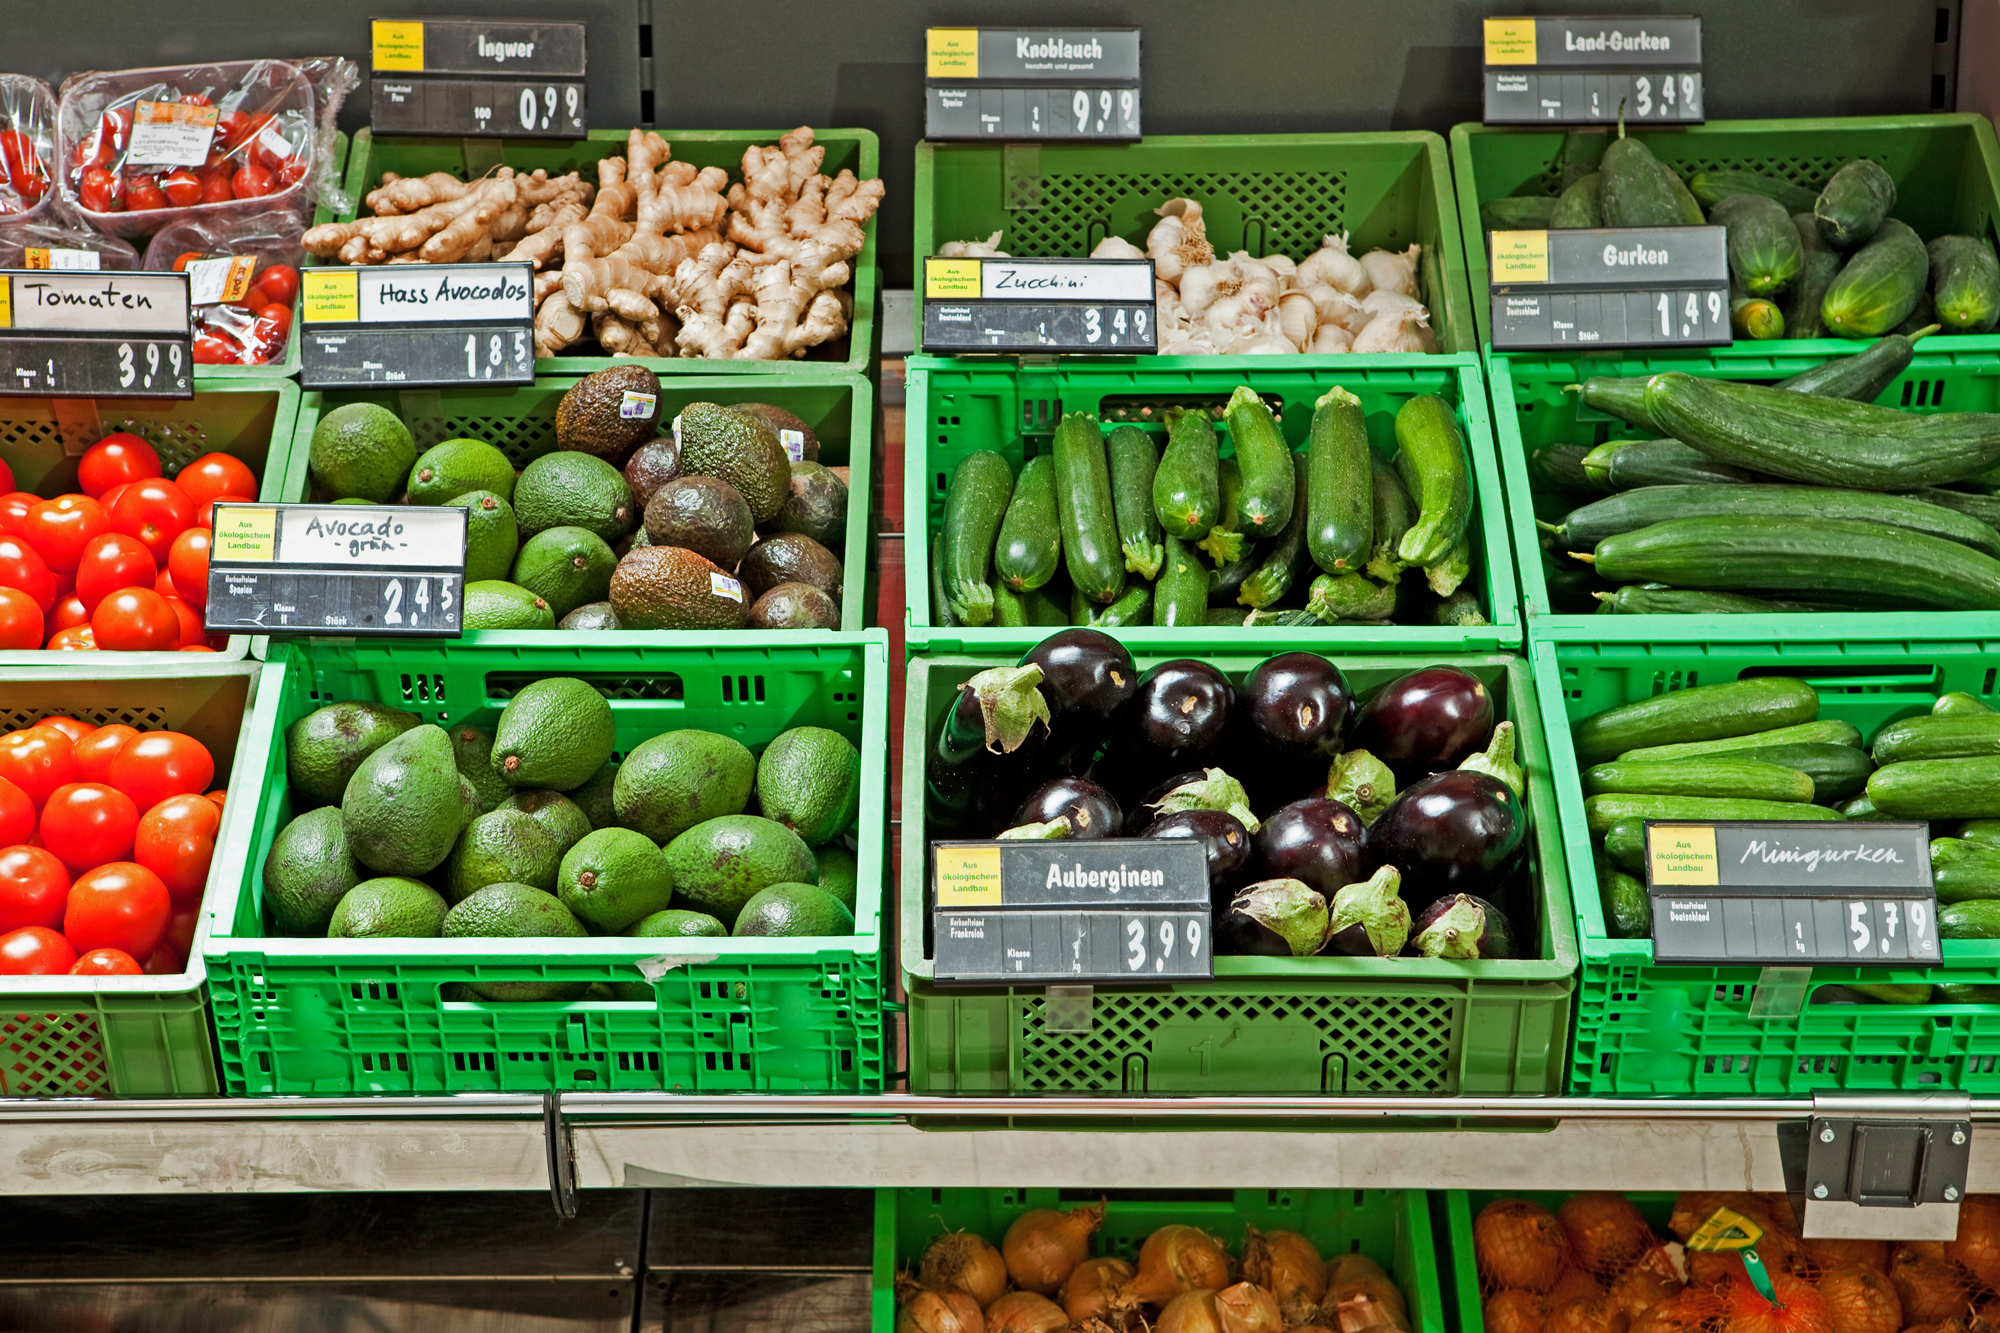 April Biggest One-Month Increase in Grocery Prices